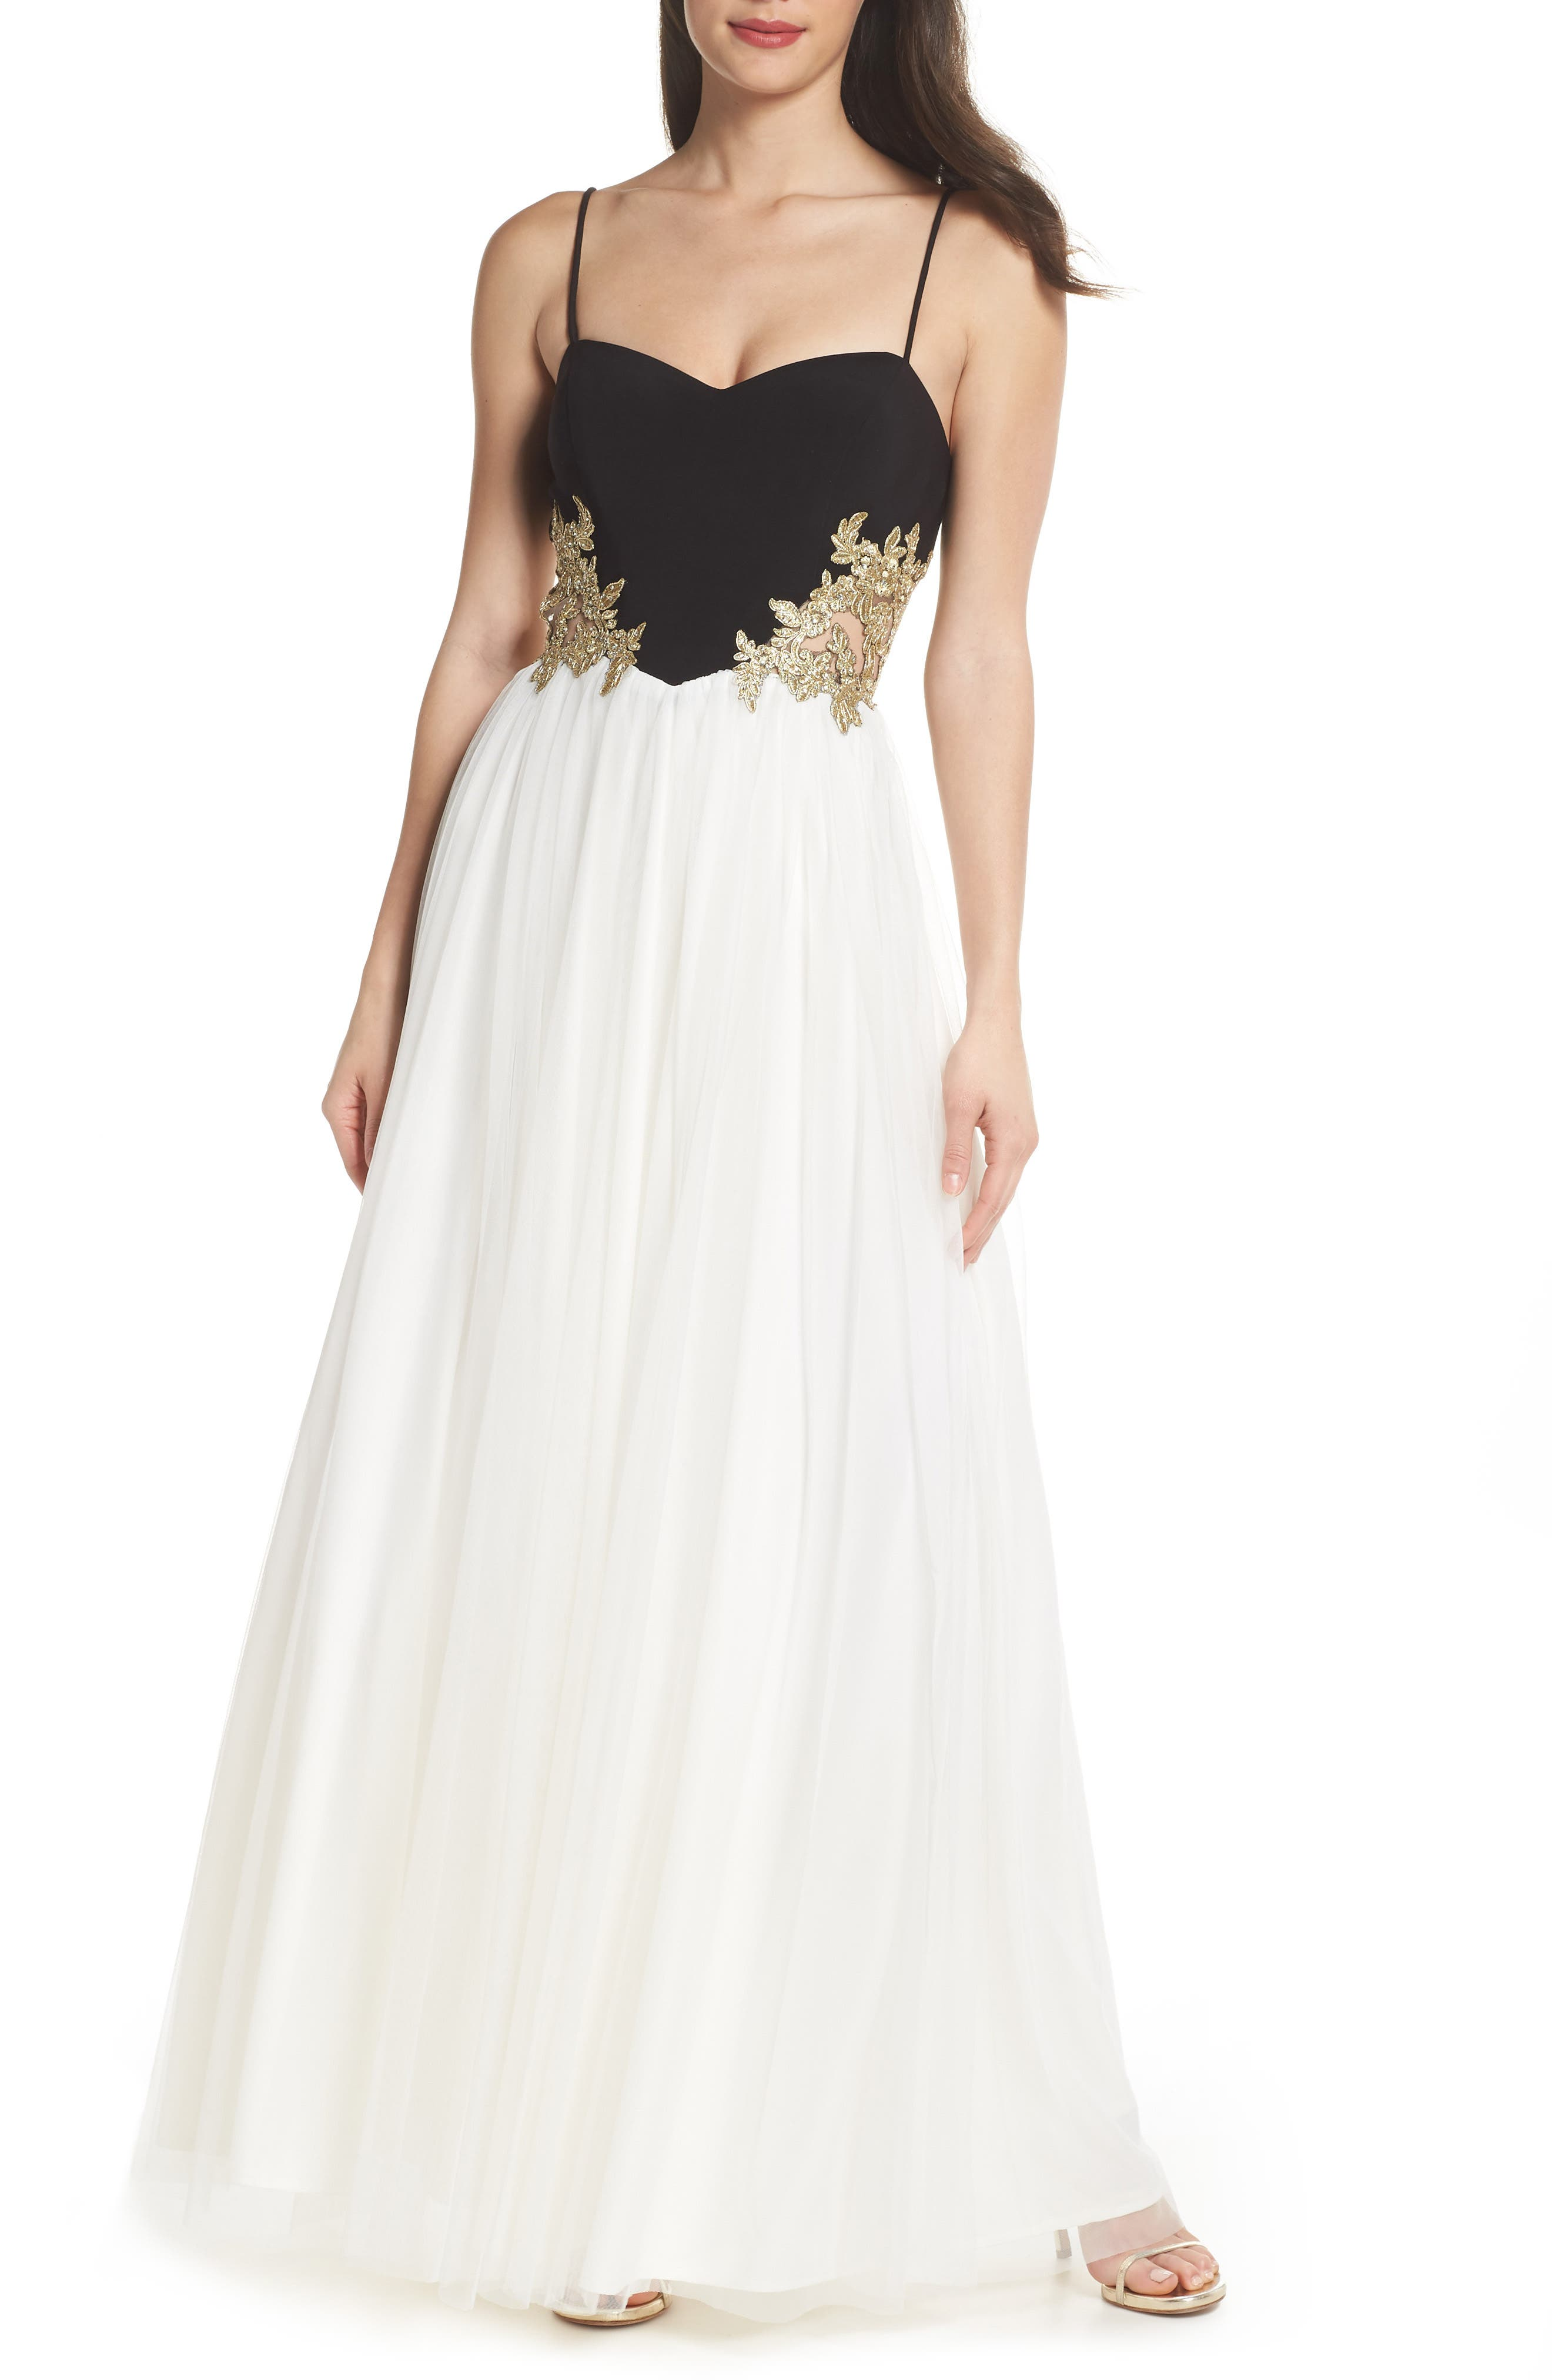 Blondie Nights Embellished Tulle Gown,                             Main thumbnail 1, color,